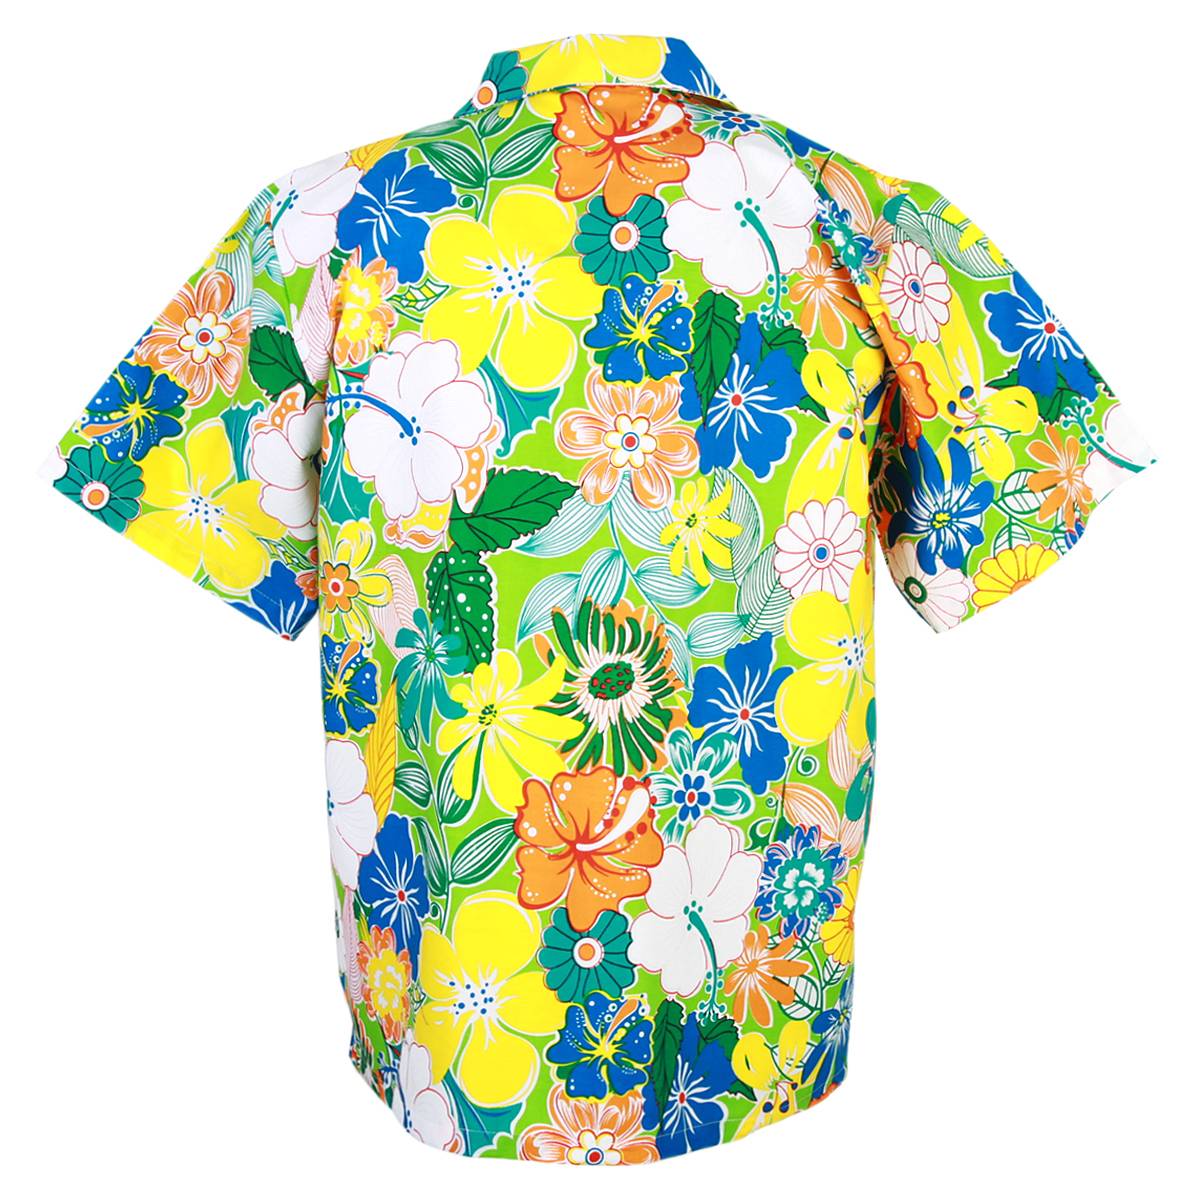 4be64e4a3 Details about Hawaiian Shirt Aloha Cotton Colorful Flower Leisure Beach  Holiday XXL hf908t